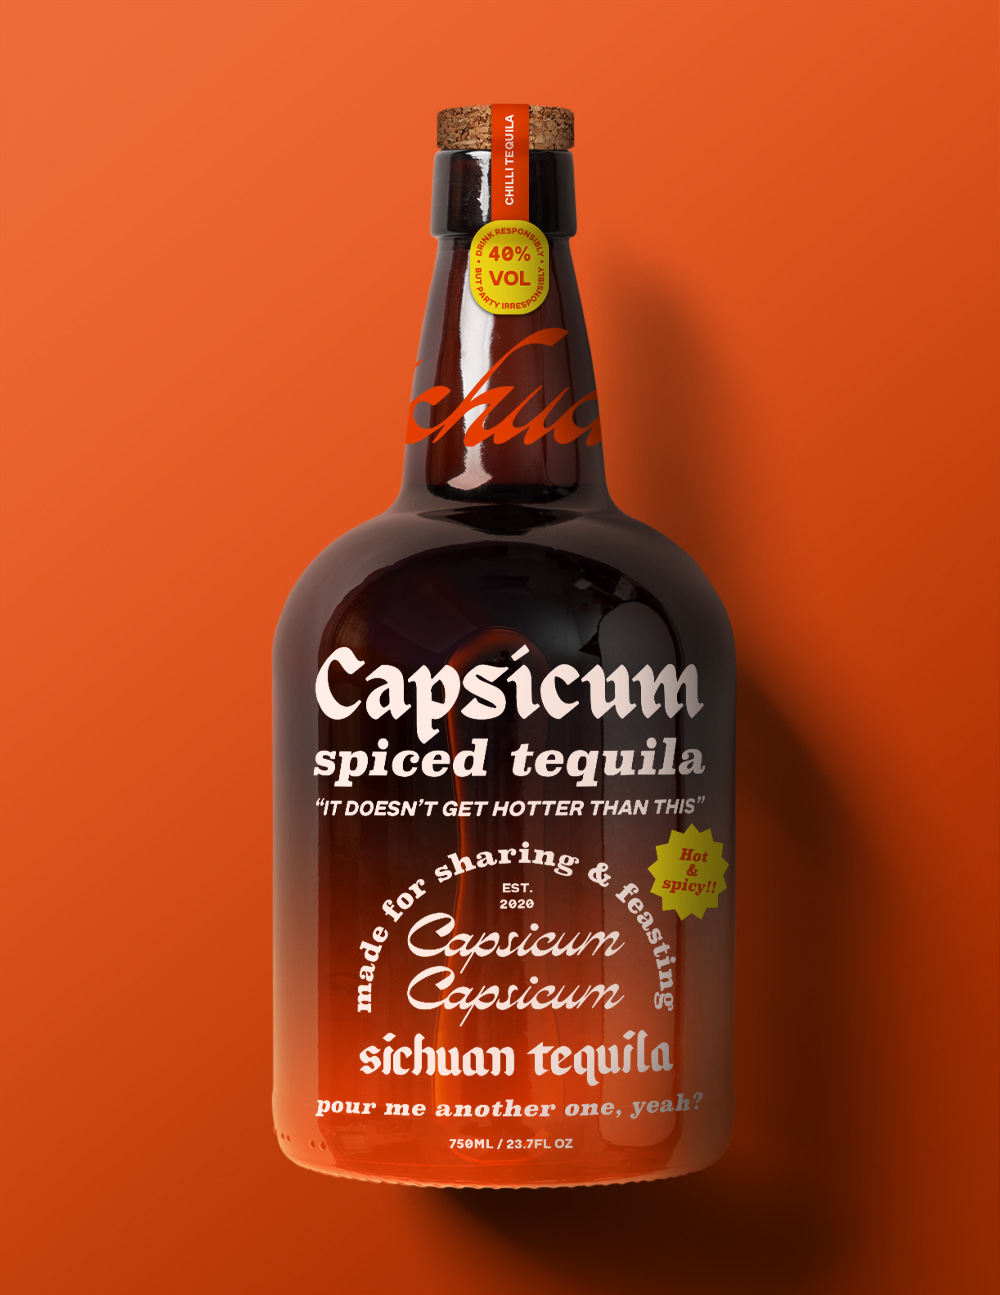 an orange tequila bottle which reads 'capsicium spiced tequila'